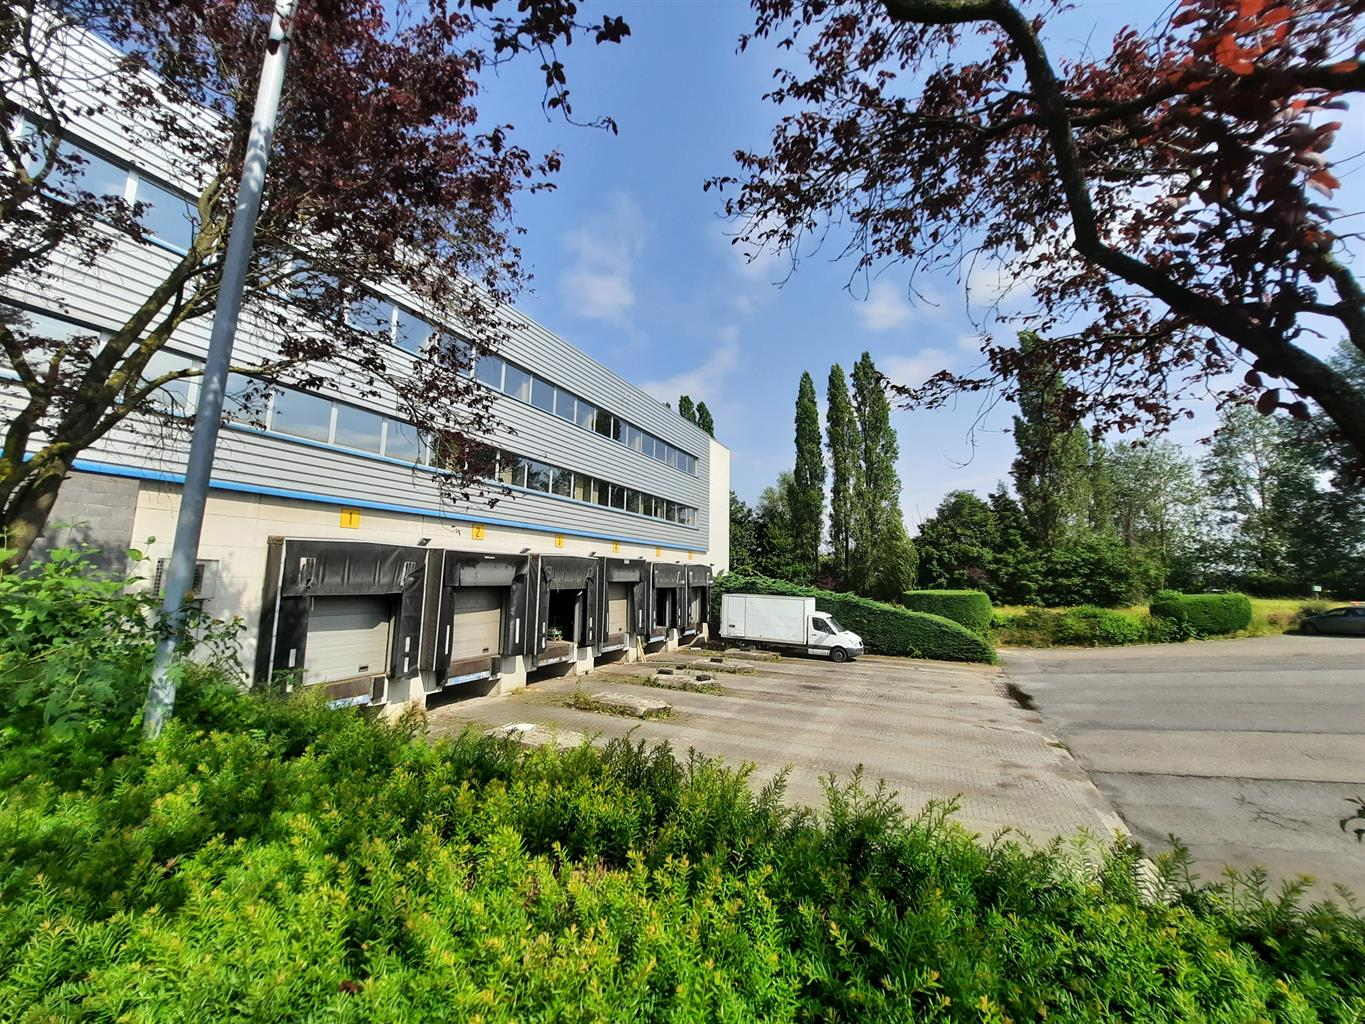 Immeuble a usage multiple - Wavre - #4395691-4